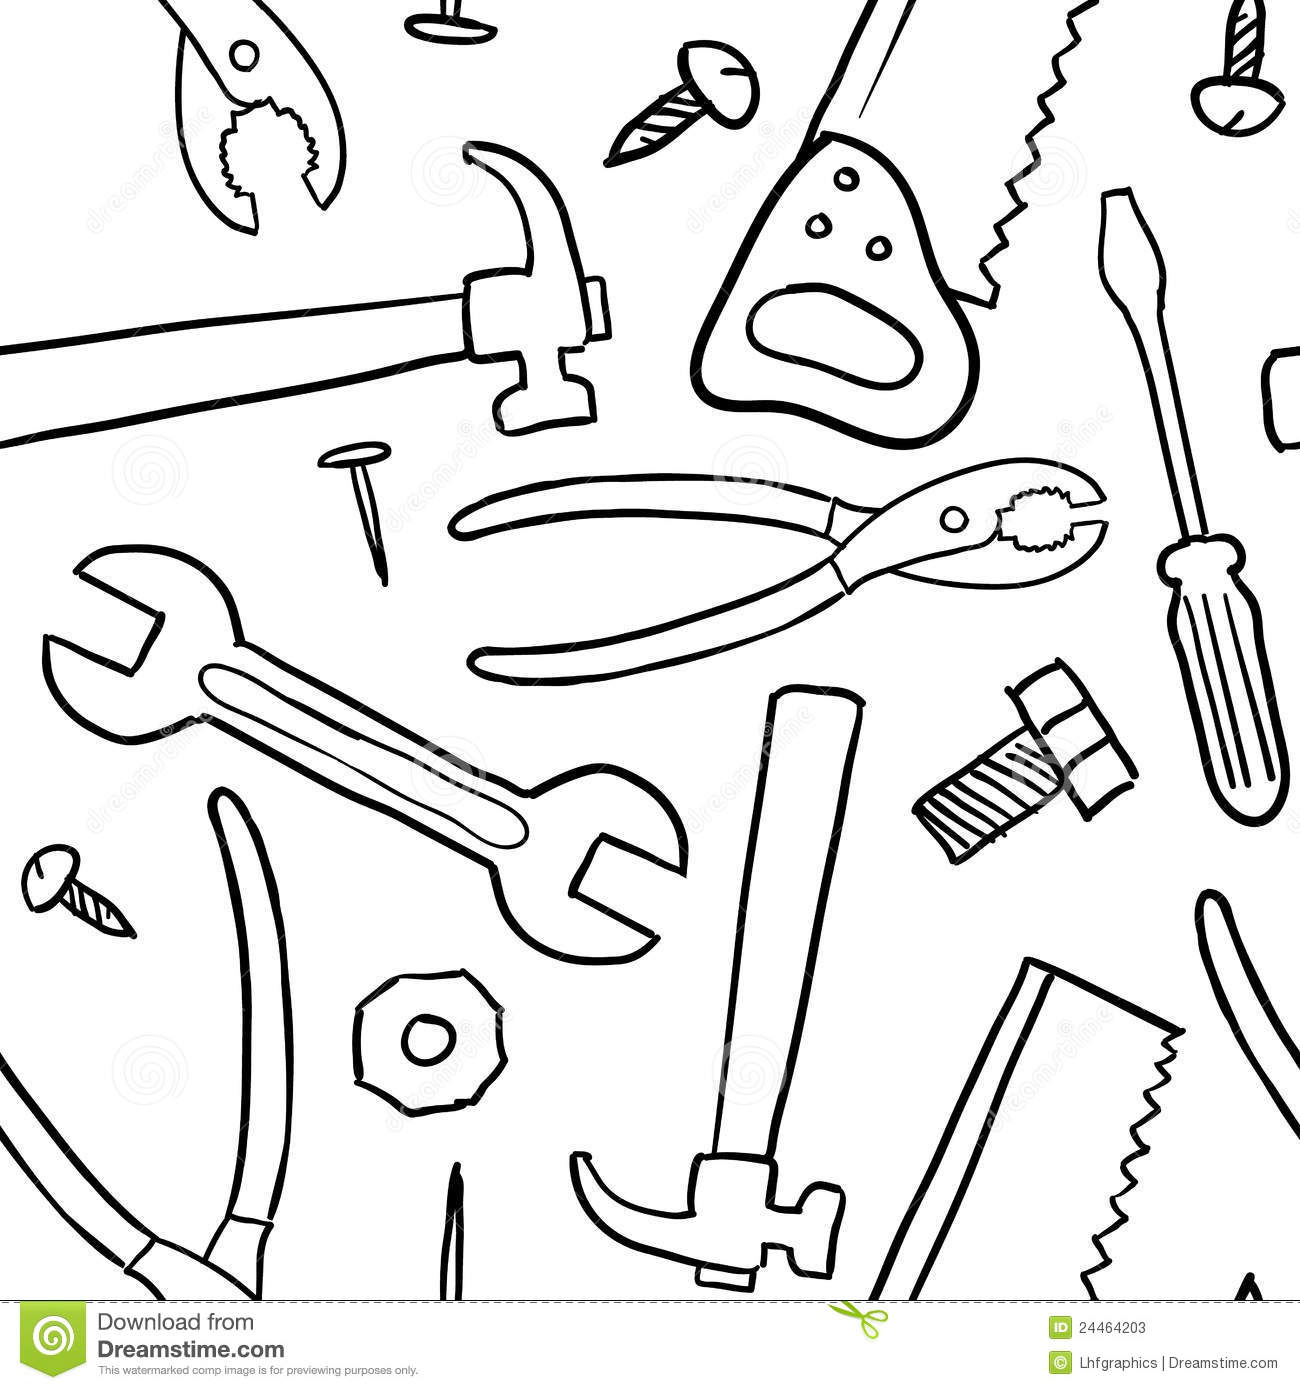 Seamless tools vector background stock vector image for Tools coloring page